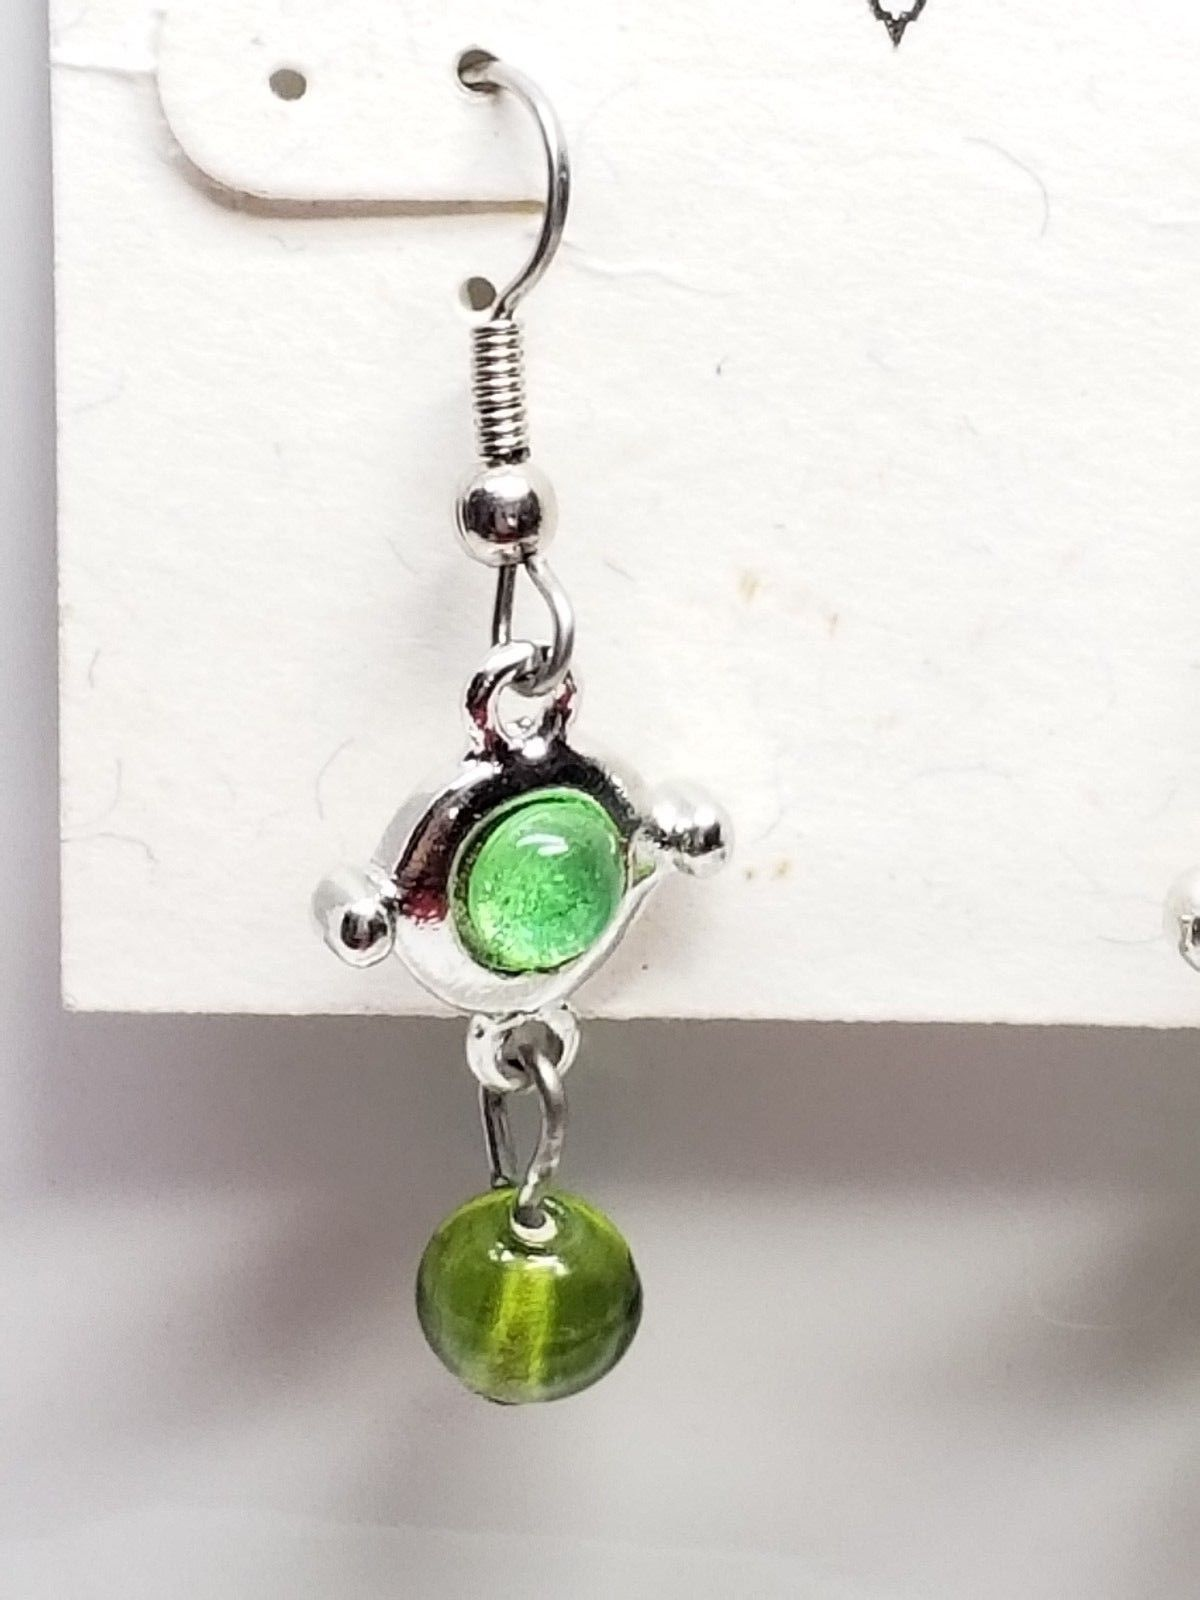 Visage Vintage Earrings Dangling Drop Green Glass Bead Fish Hook New Old Stock